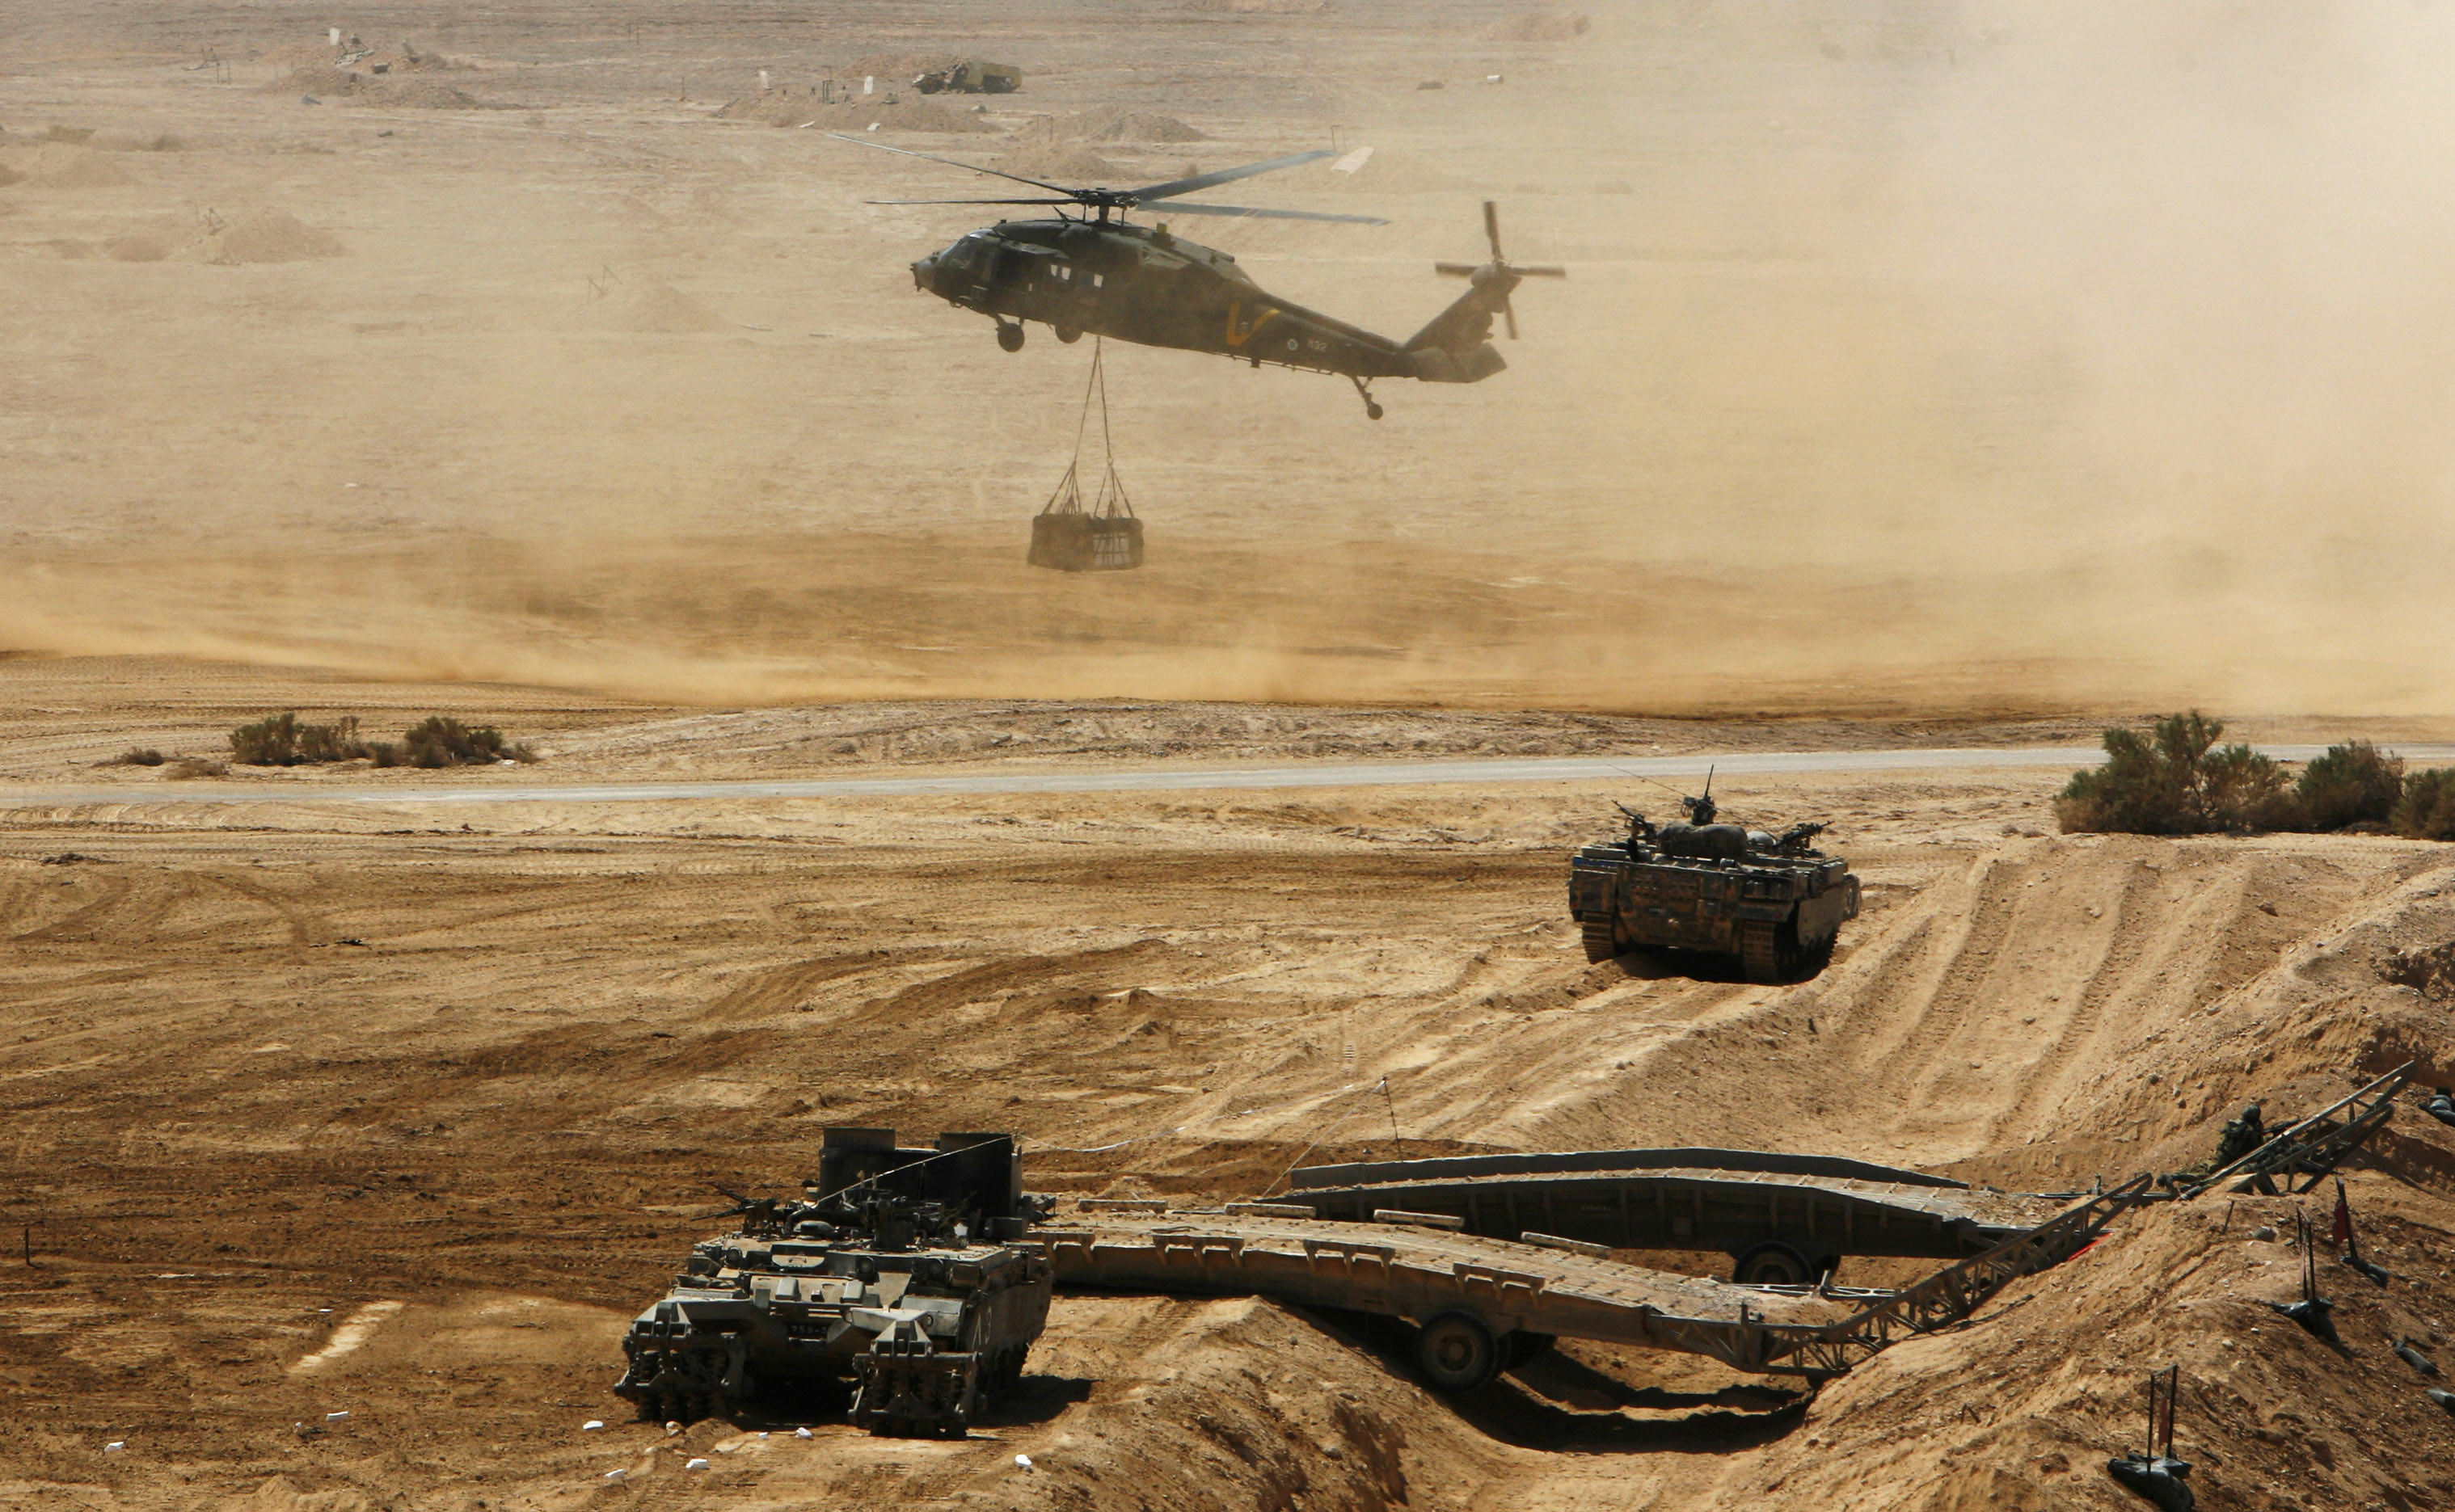 U.S. Military Aid to Israel: A Change in the Political Wind